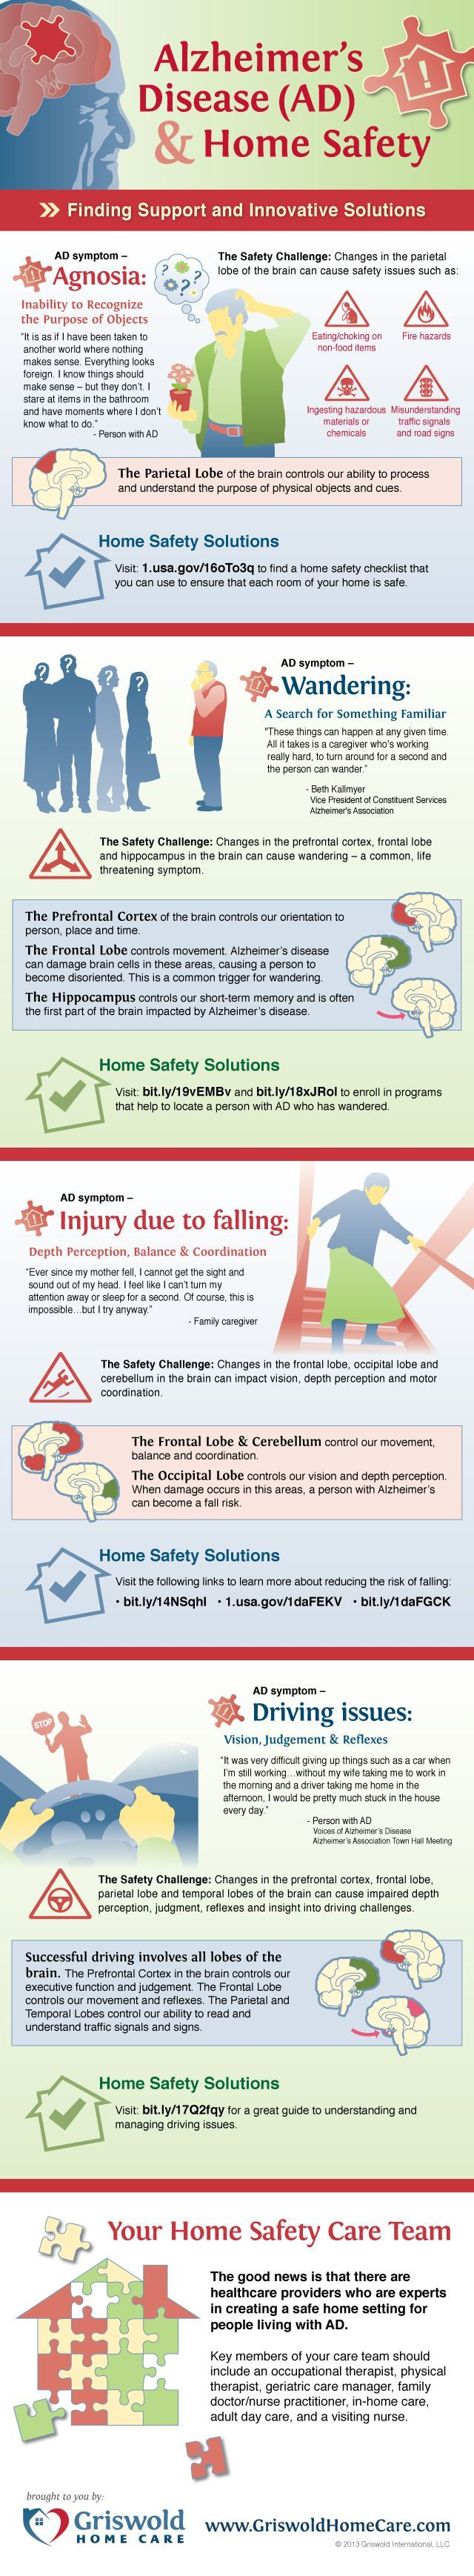 [INFOGRAPHIC] Alzheimer's Disease & Home Safety